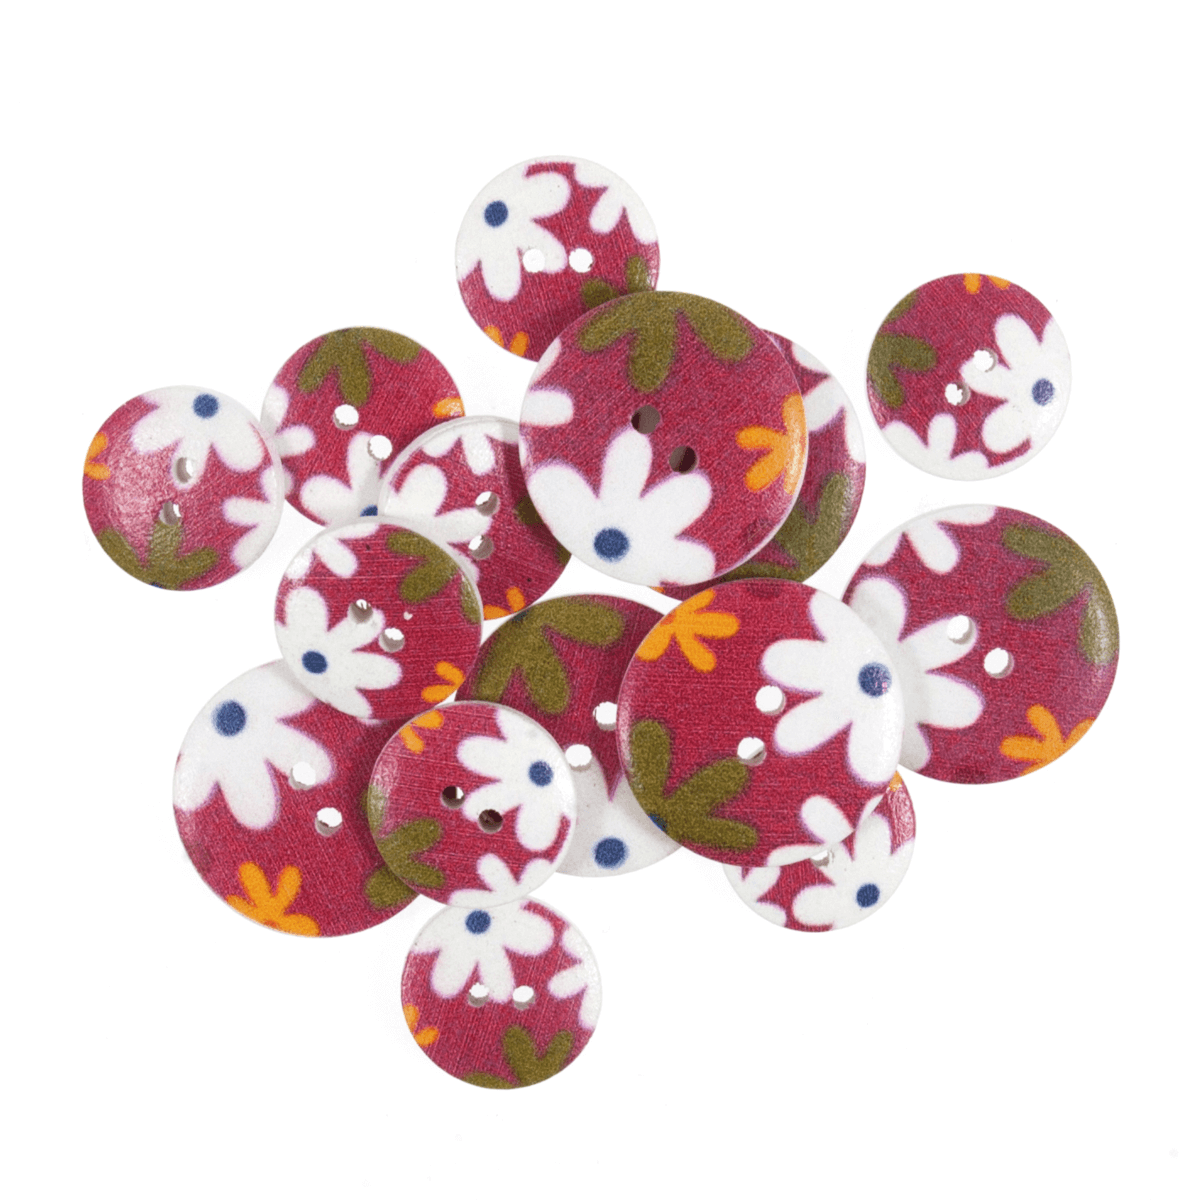 15 x Assorted Daisy Delight Wooden Craft Buttons 18mm - 25mm